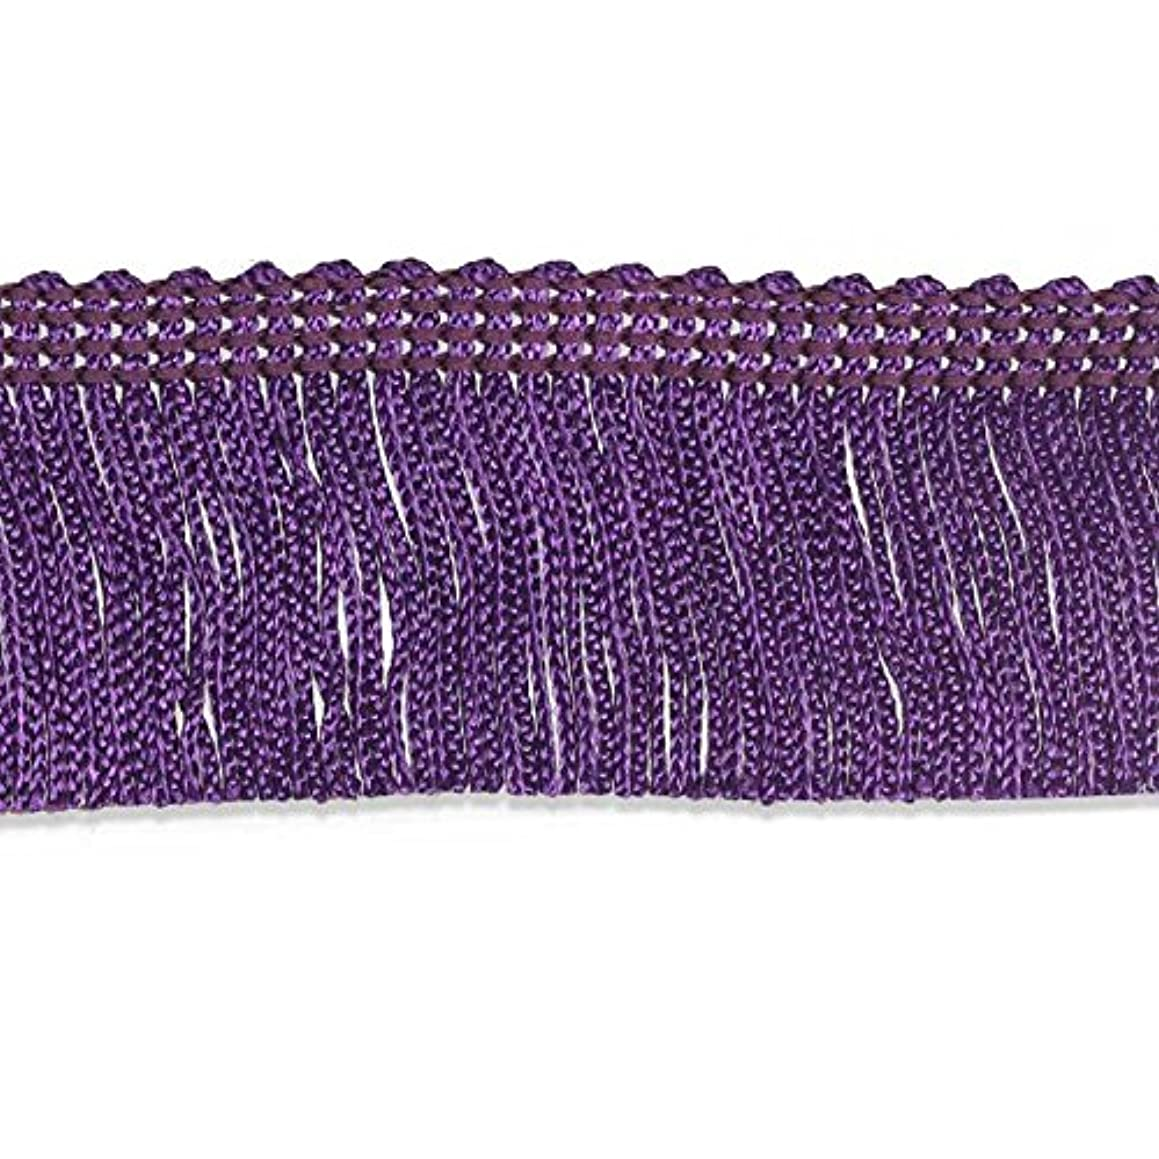 Decorative Trimmings 100% Rayon Chainette Fringe, 2